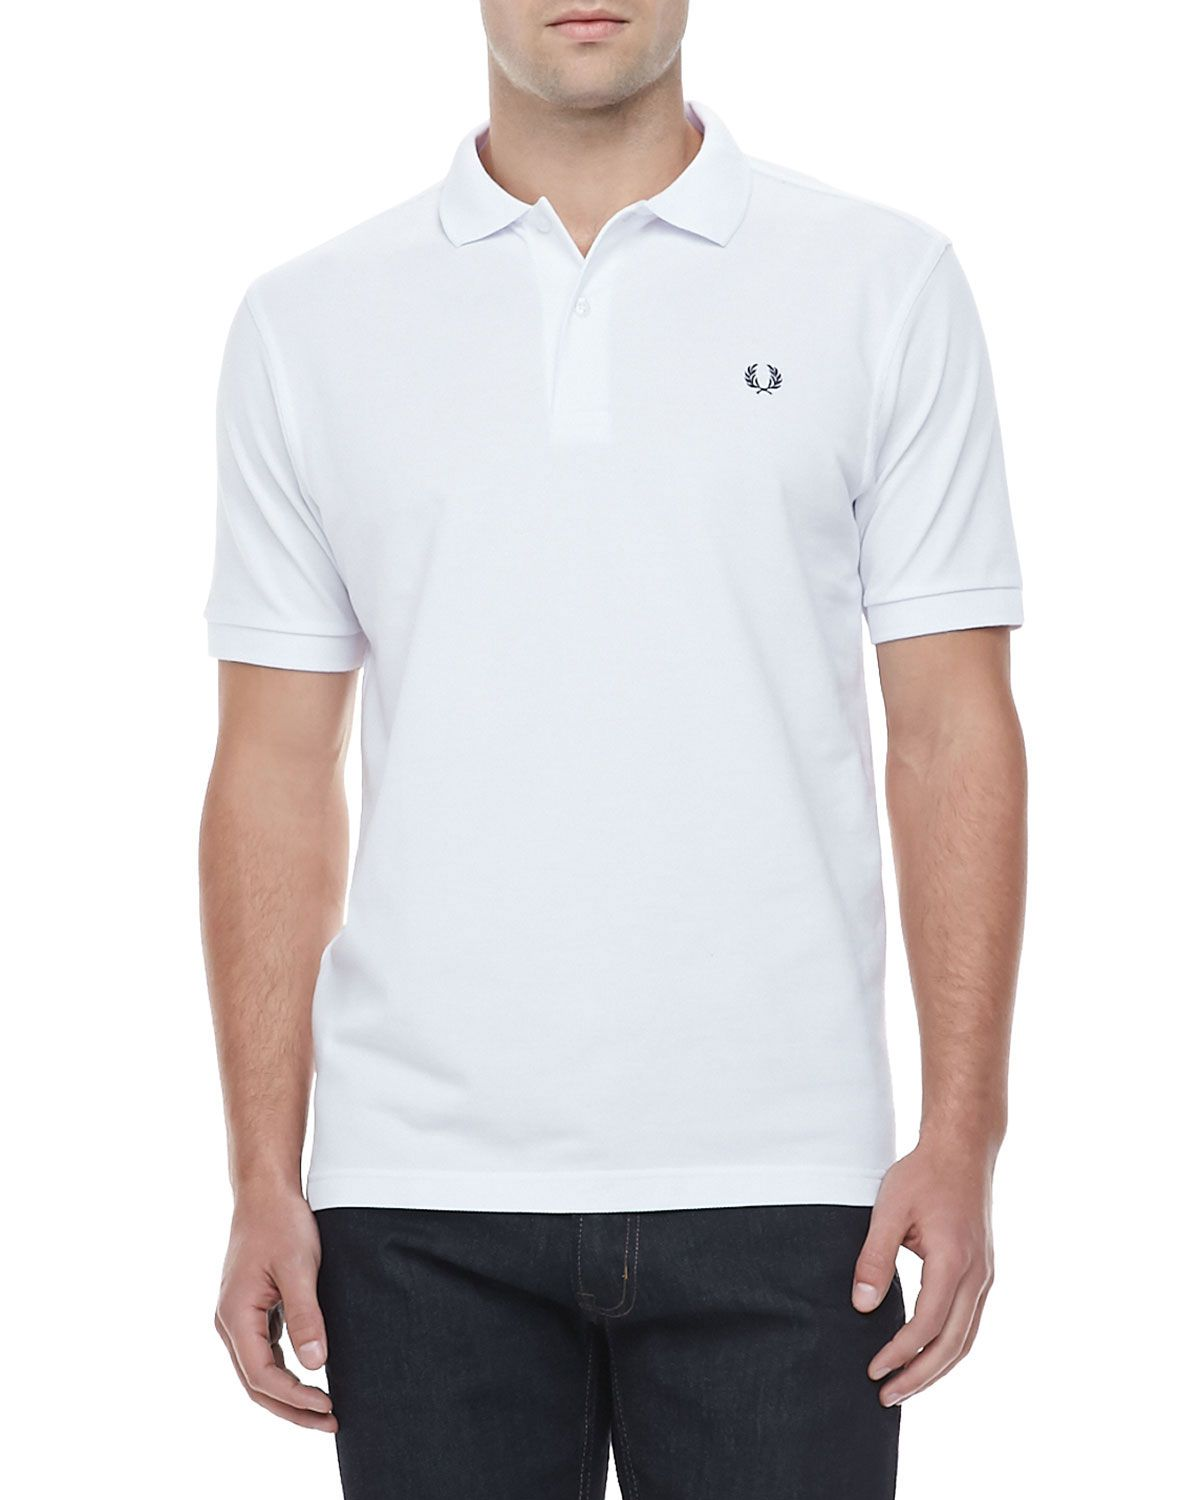 Polo-shirt Fred Perry white classic M6000p Polo